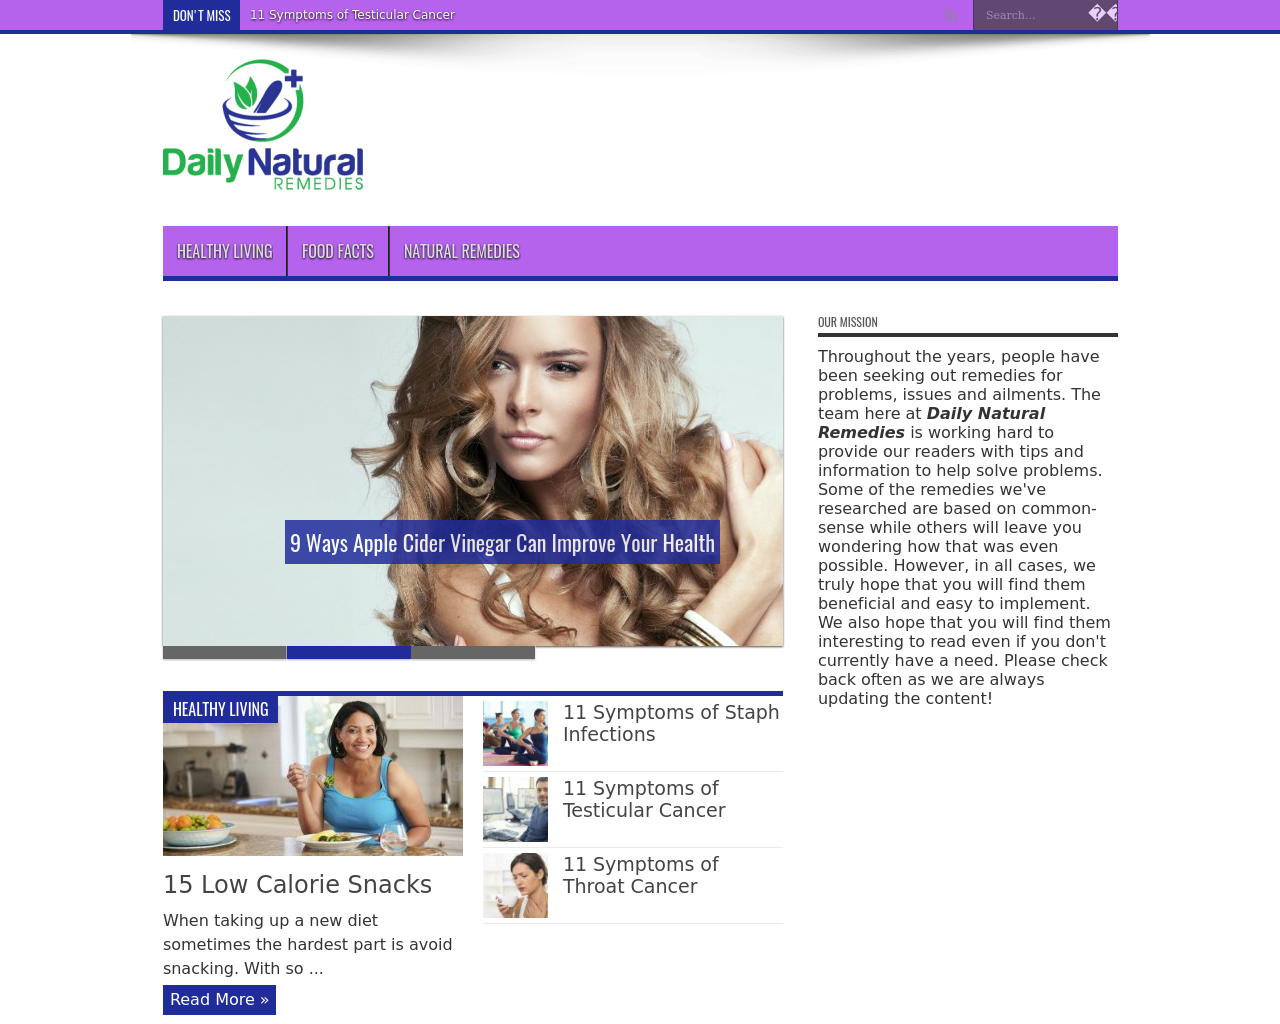 Daily-Natural-REMEDIES-Advertising-Reviews-Pricing